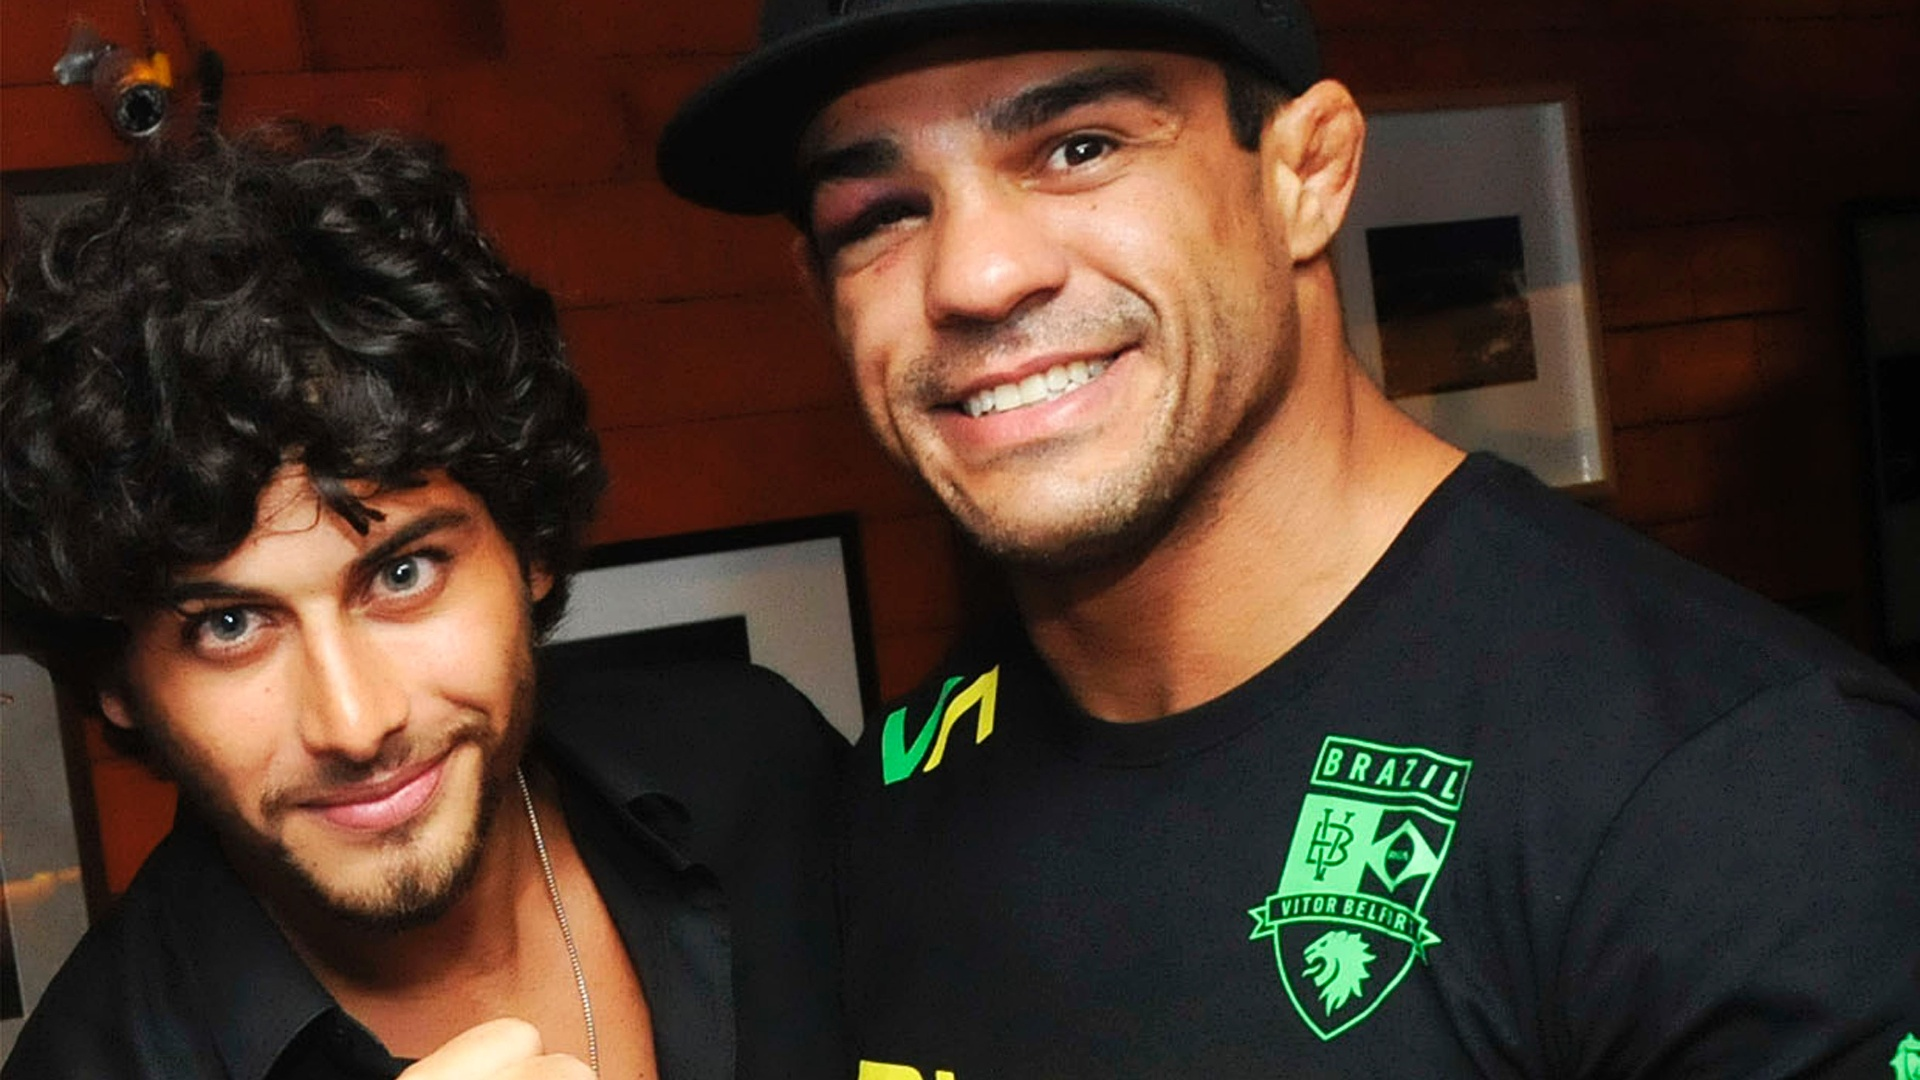 Jesus Luz recebe um abrao de Vitor Belfort na comemorao do seu aniversrio de 25 anos no Barzin, na zona sul do Rio. Na noite anterior, Belfort venceu Anthony Johnson pela categoria peso mdio, no UFC Rio (15/1/12)